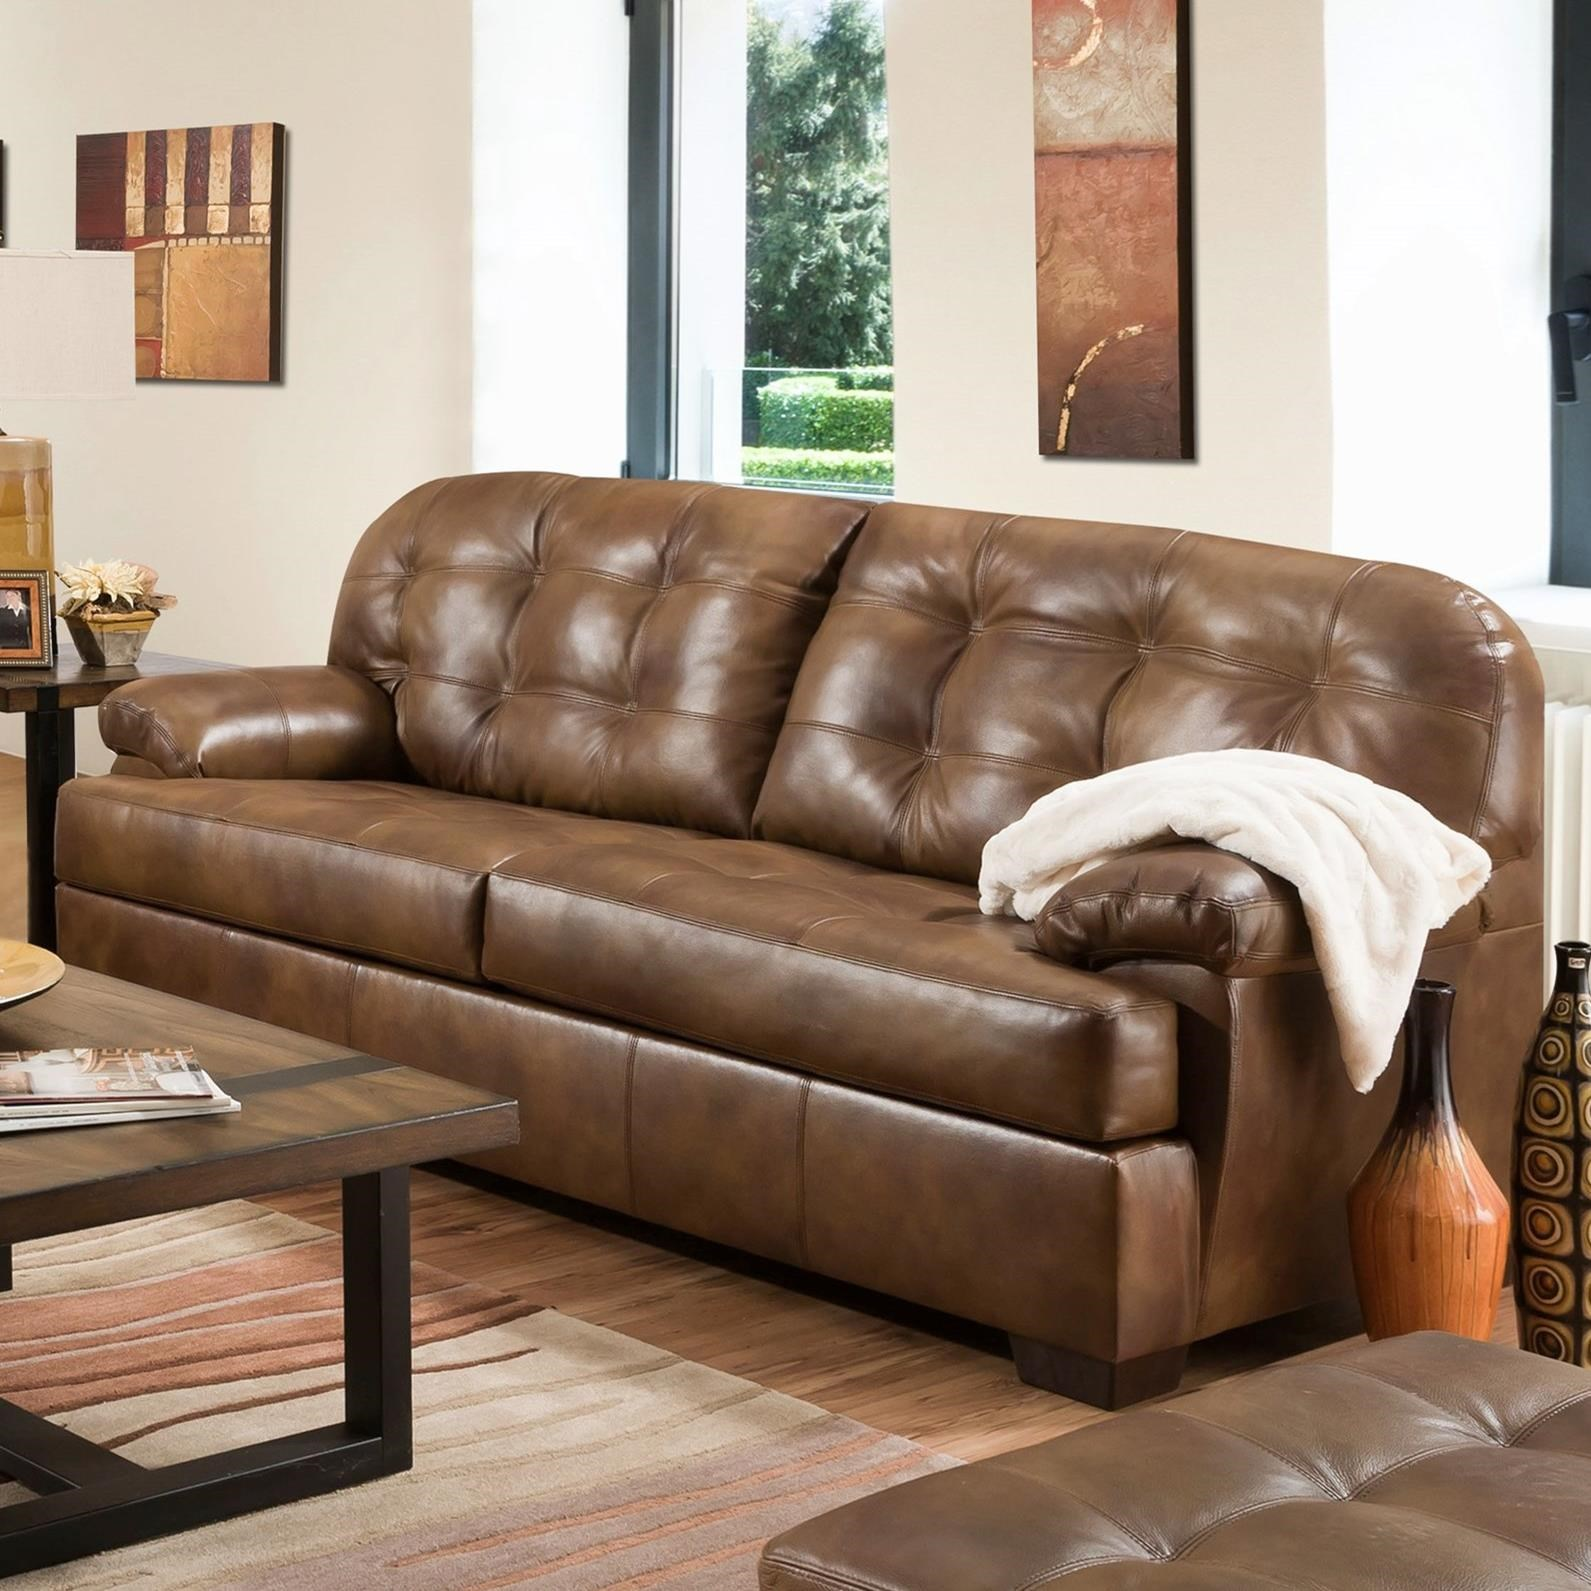 Furniture Industries: United Furniture Industries 2037 2037-03 Casual Sofa With